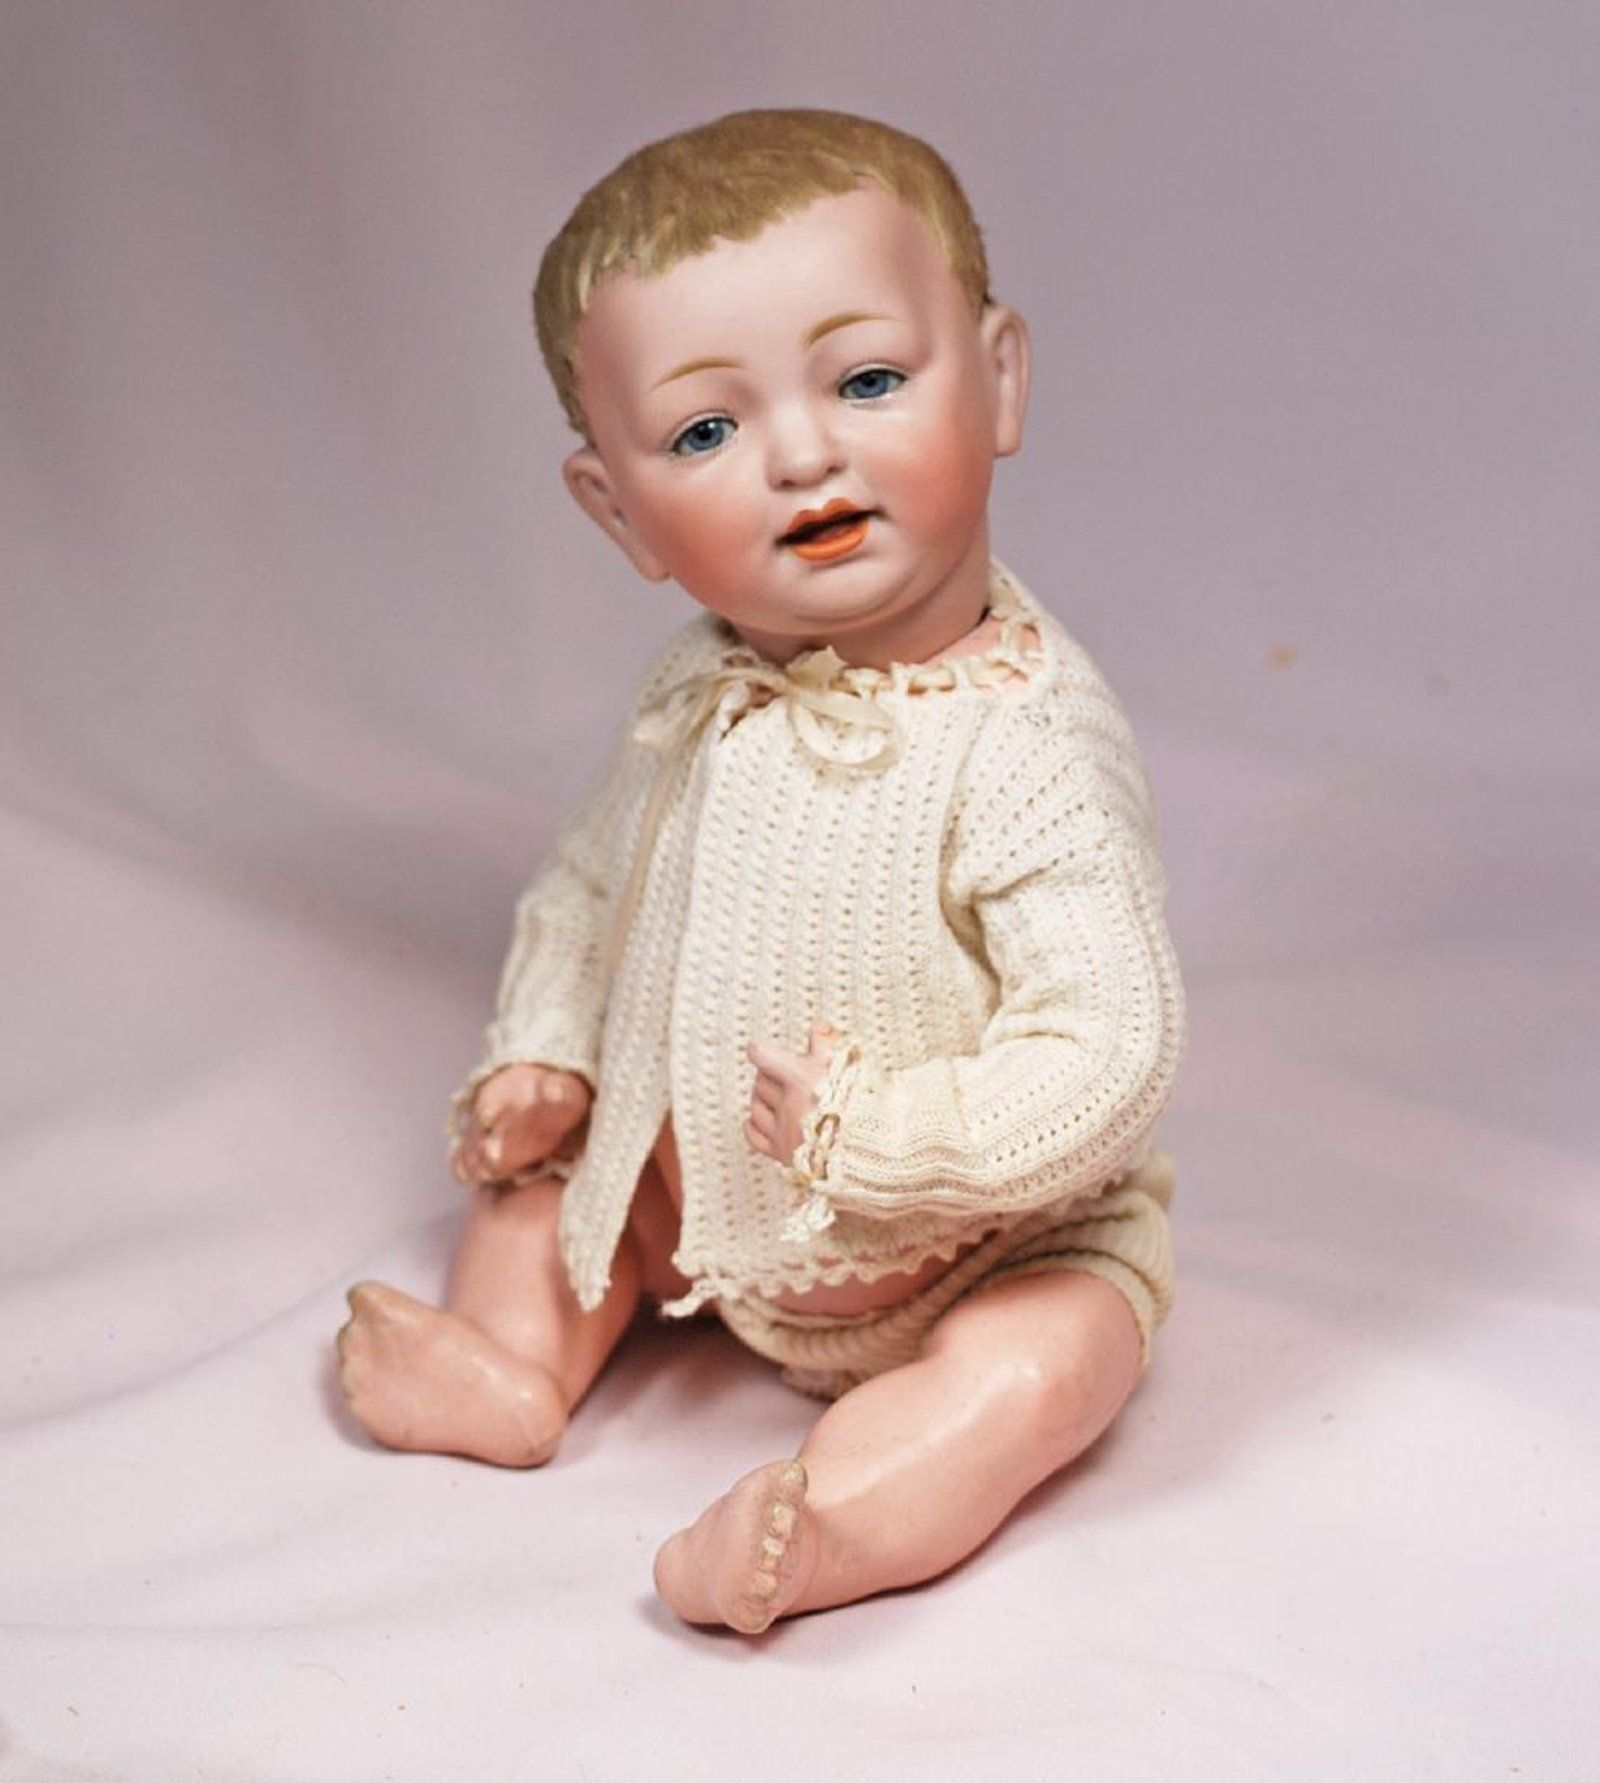 66 GERMAN BISQUE CHARACTER BABY BY KESTNER WITH